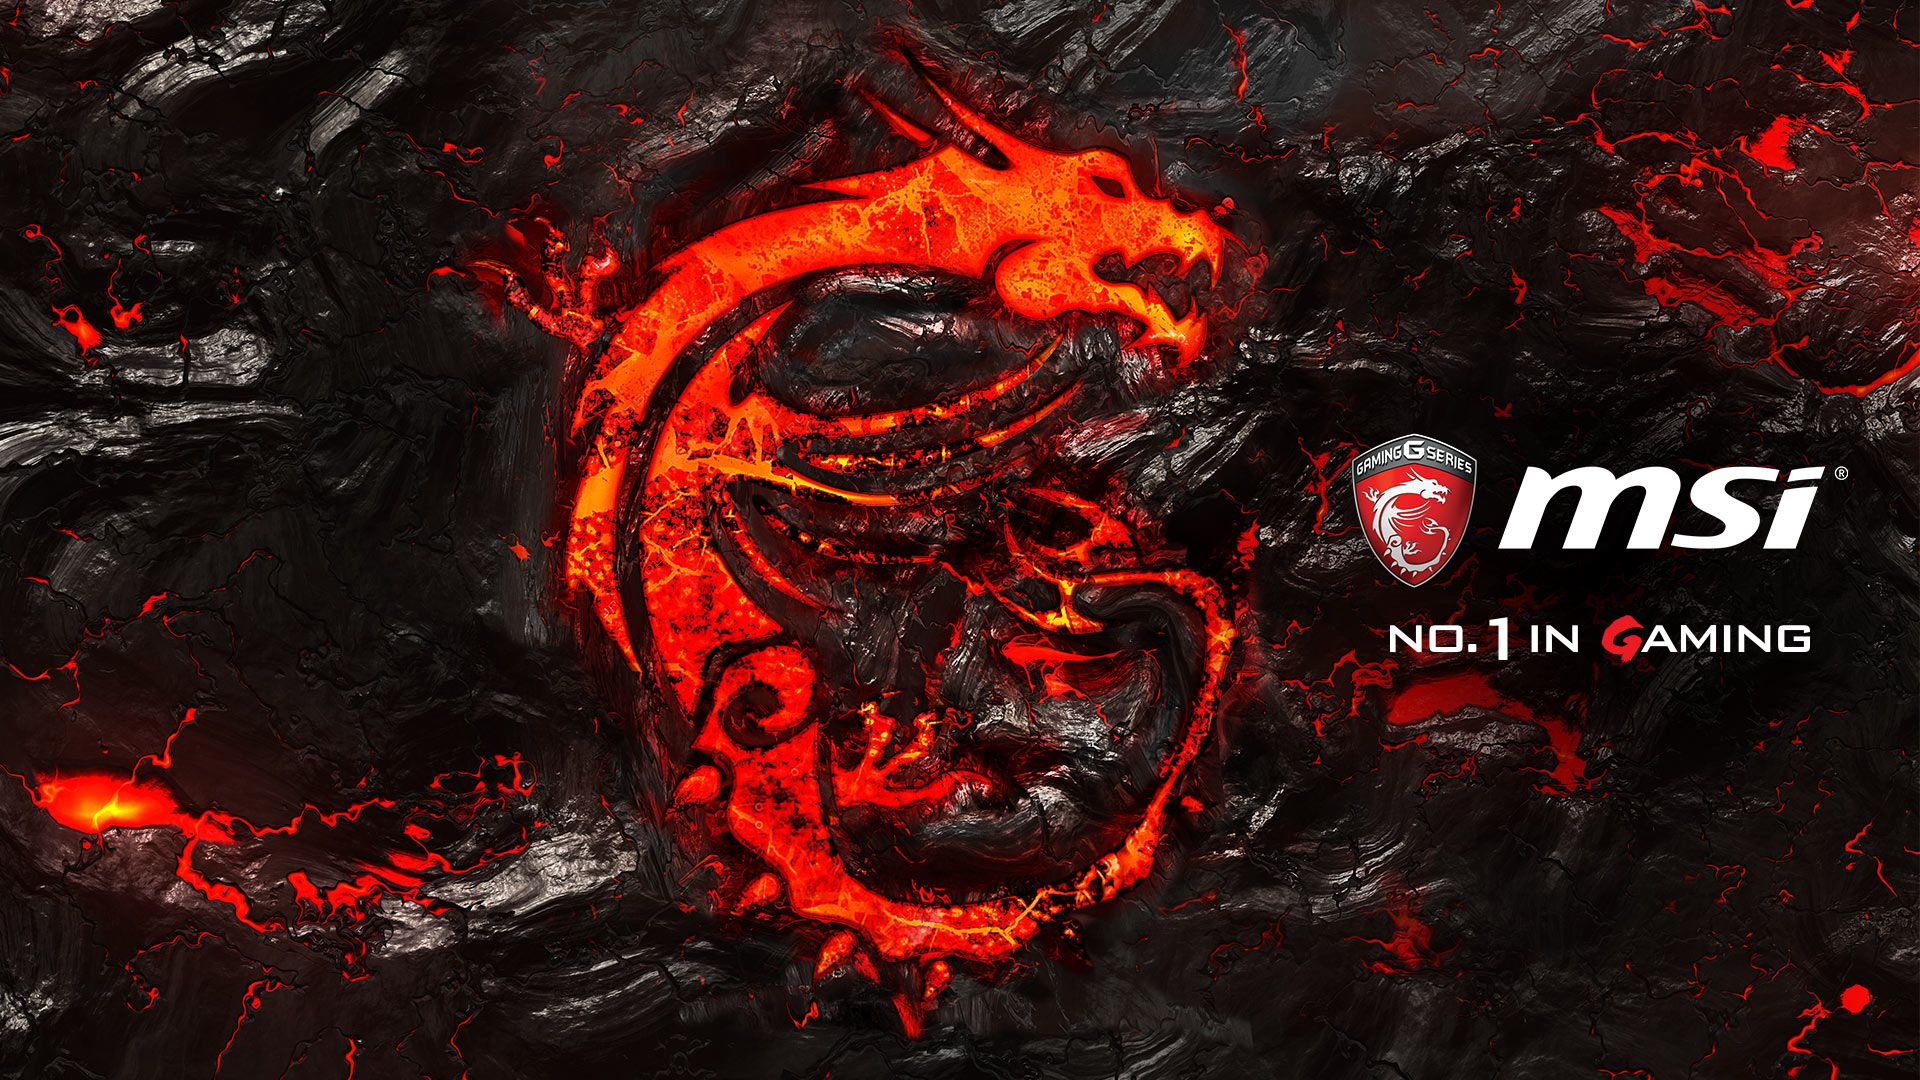 Msi Wallpaper Full Hd Msi Wallpapers Group 78